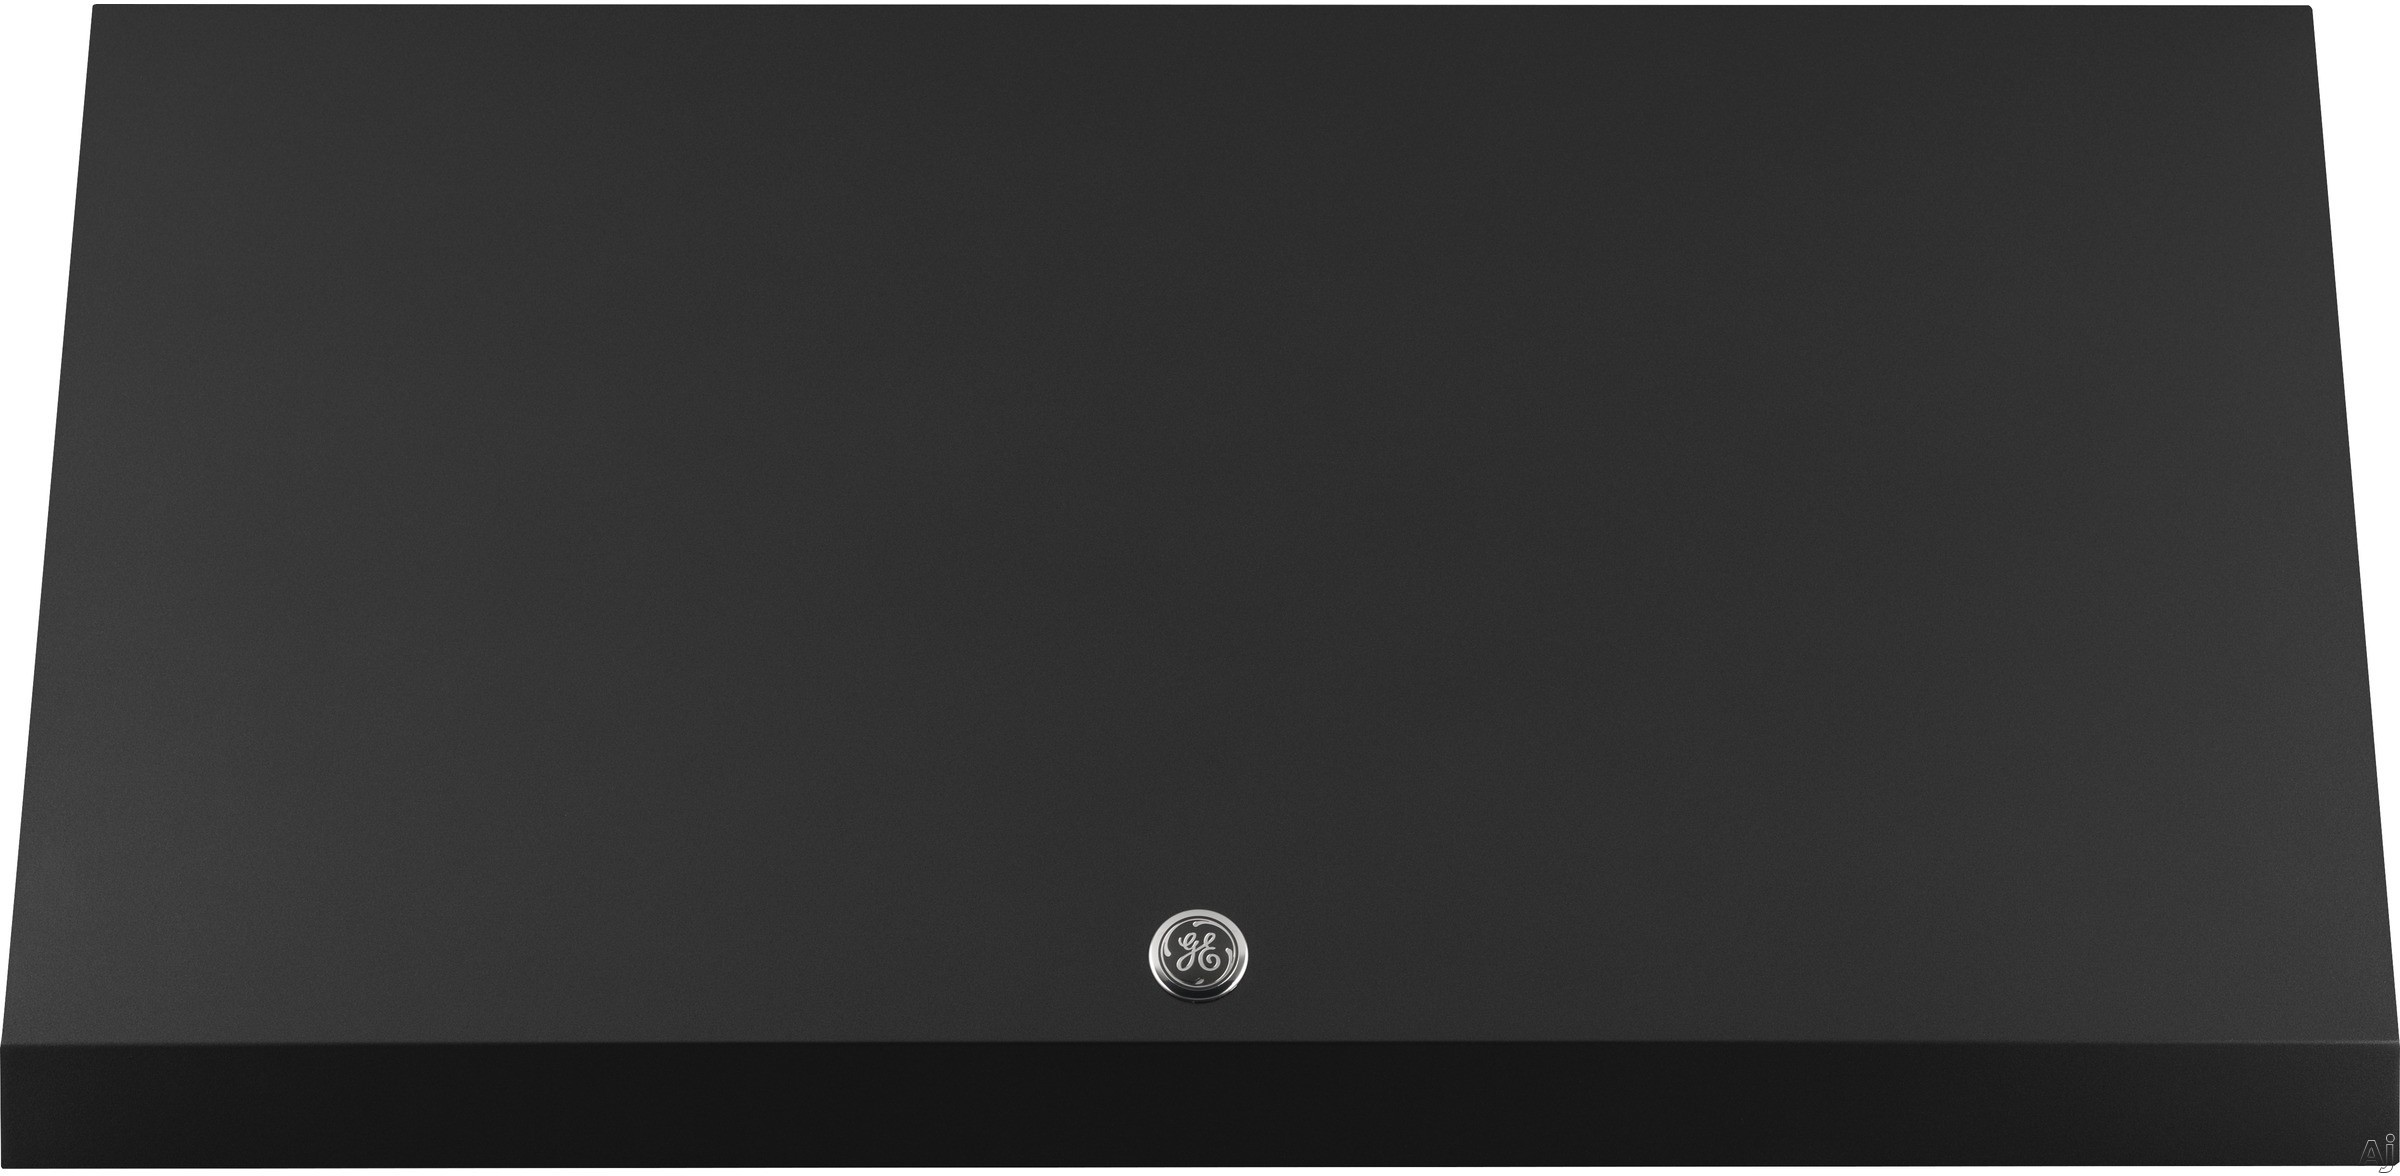 GE Cafe Series CV936 30 Inch Wall Mount Range Hood with 4 Speeds, Halogen Lighting, Night Light, 590 CFM, Vertical Exhaust and Removable Grease Filter CV936